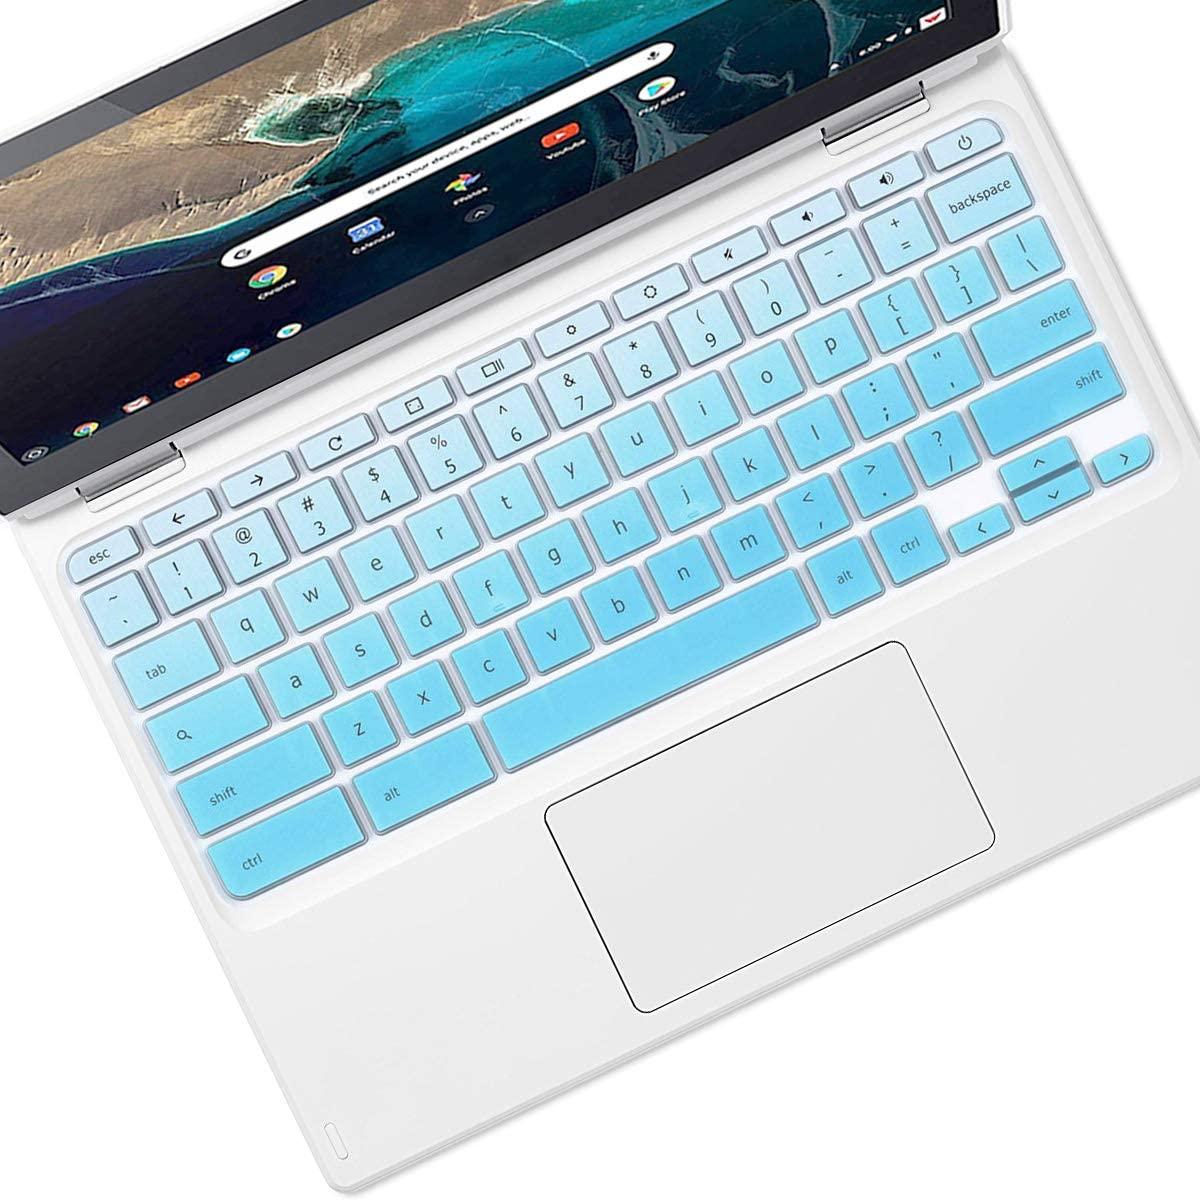 Keyboard Cover for Acer Chromebook 11 N7 CB3-132 CB3111 C731 C732 C771 11.6"